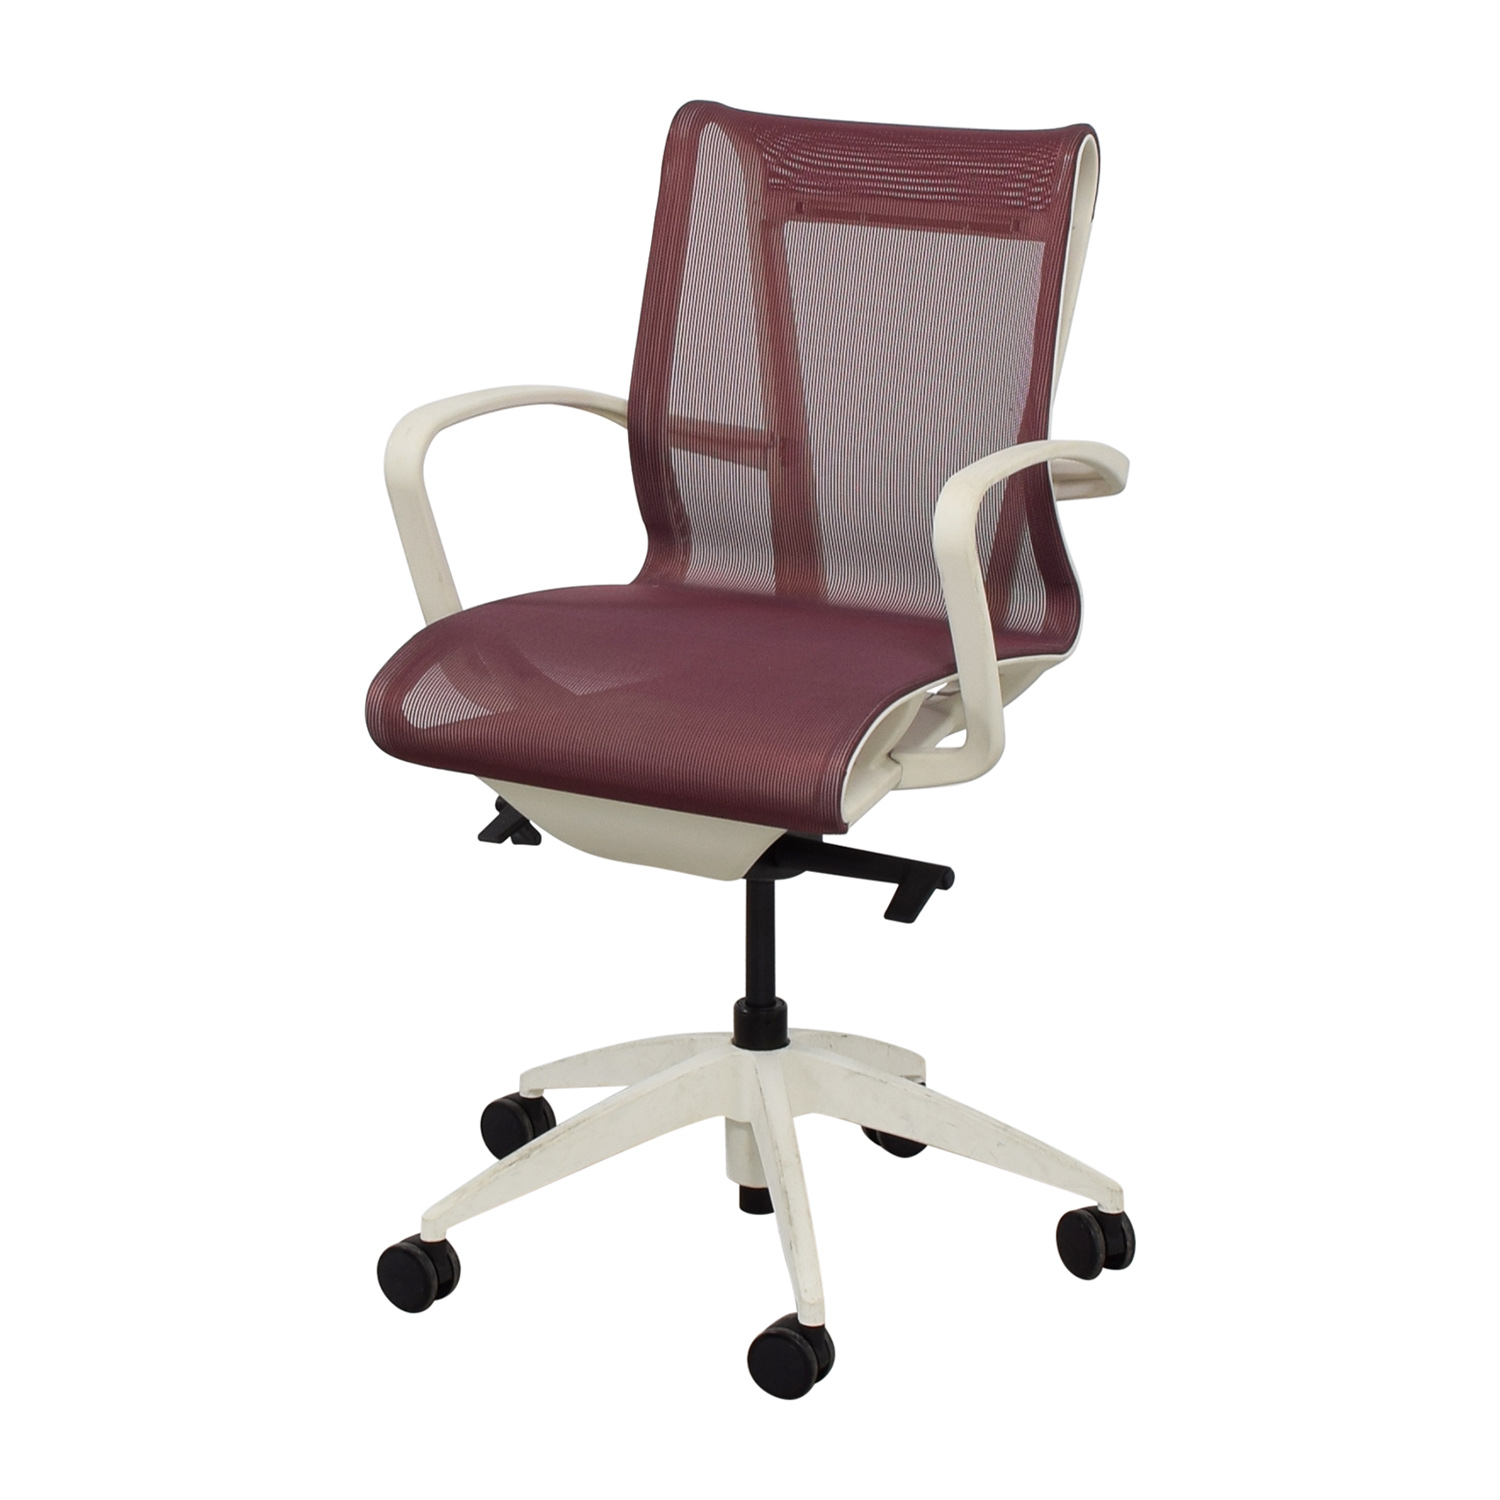 90 off 9to5 seating 9to5 seating cydia lavender mesh chair chairs